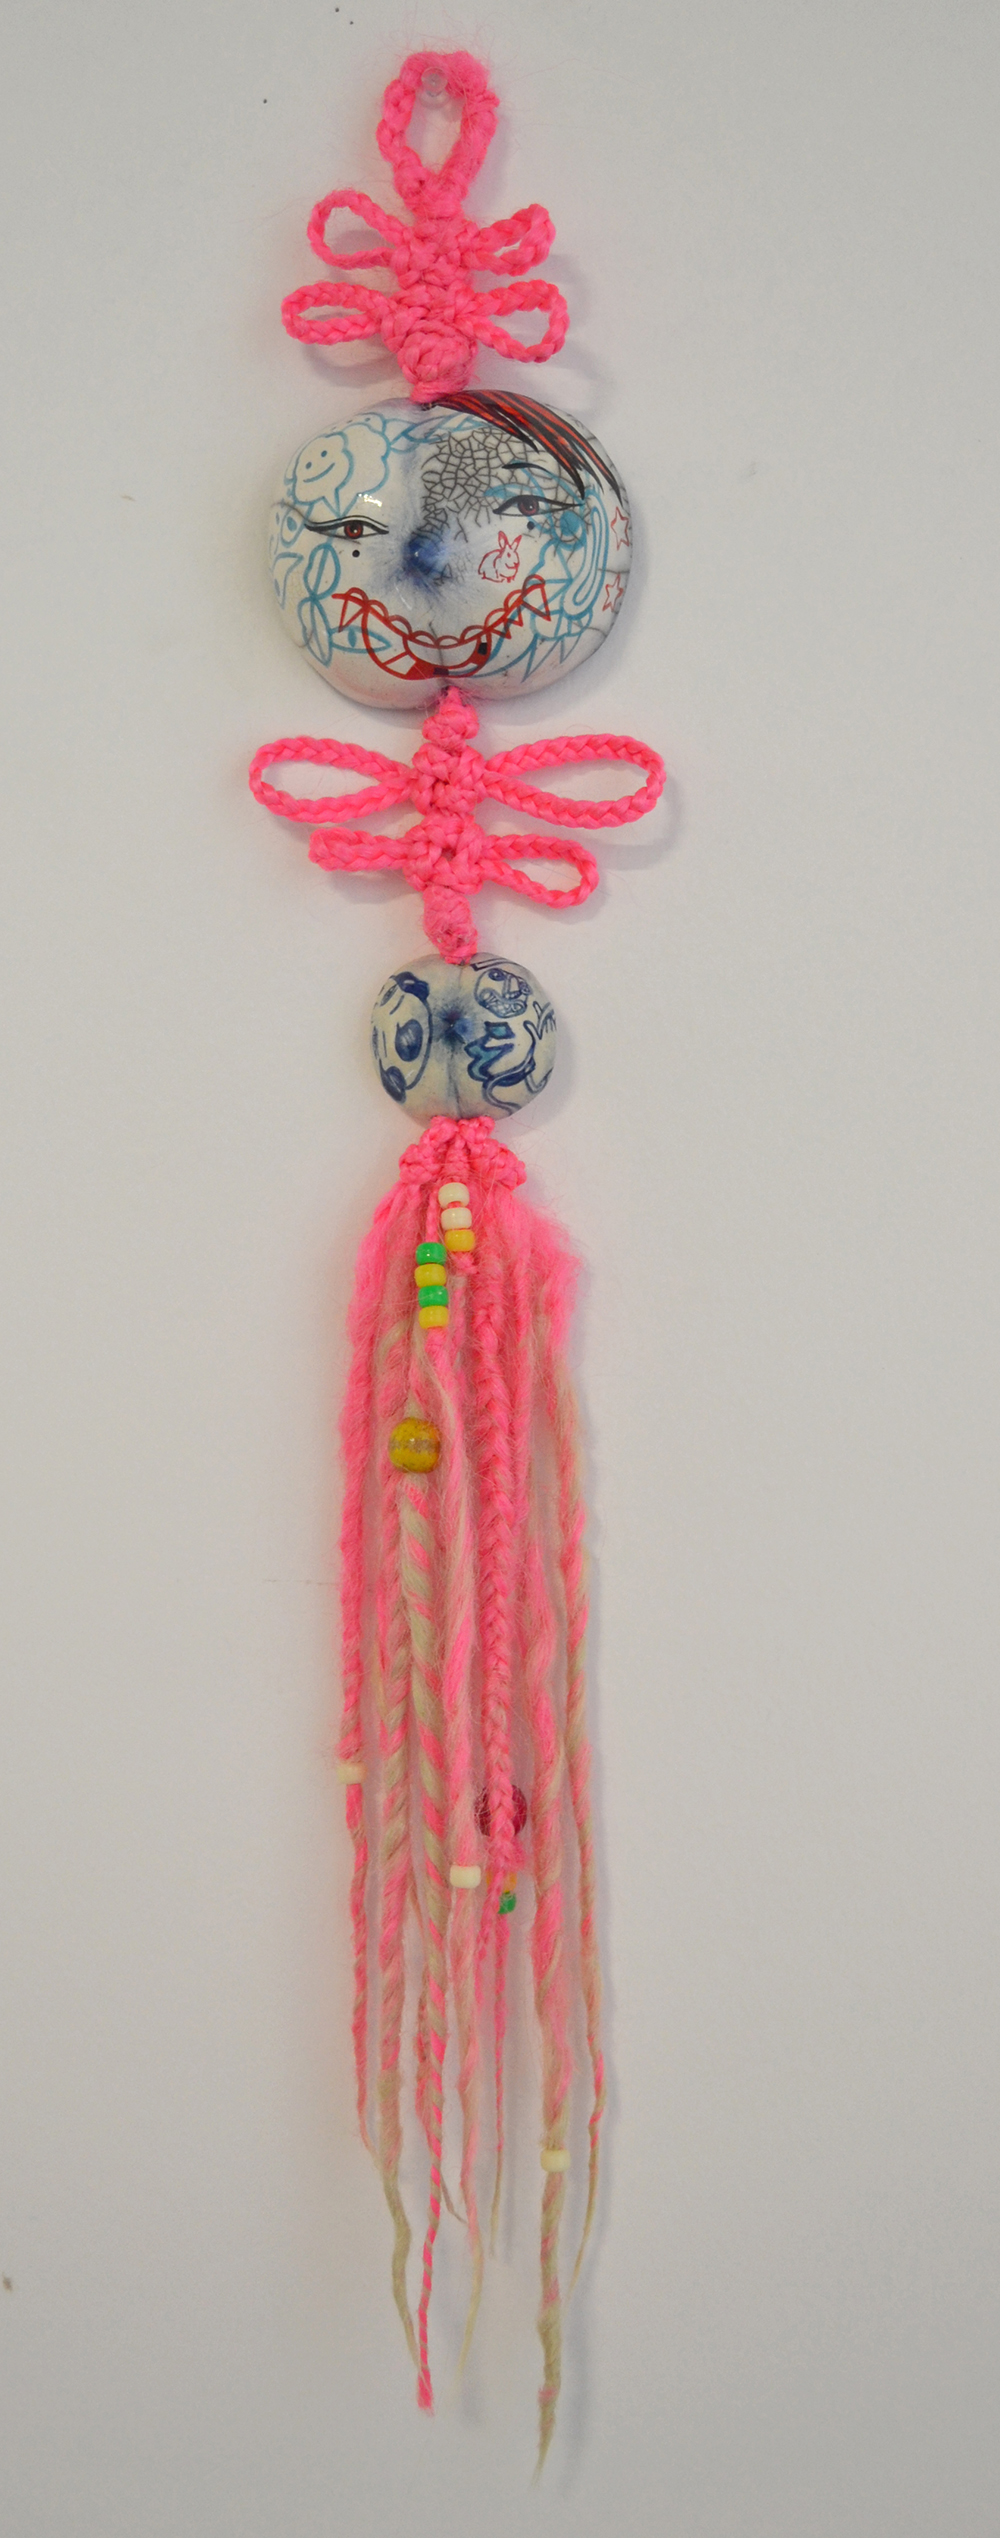 "Jiha Moon  New Bride  Ceramic, hand-knotted synthetic hair, pony beads, thread 28"" x 5"" x 2.25"" 2013"